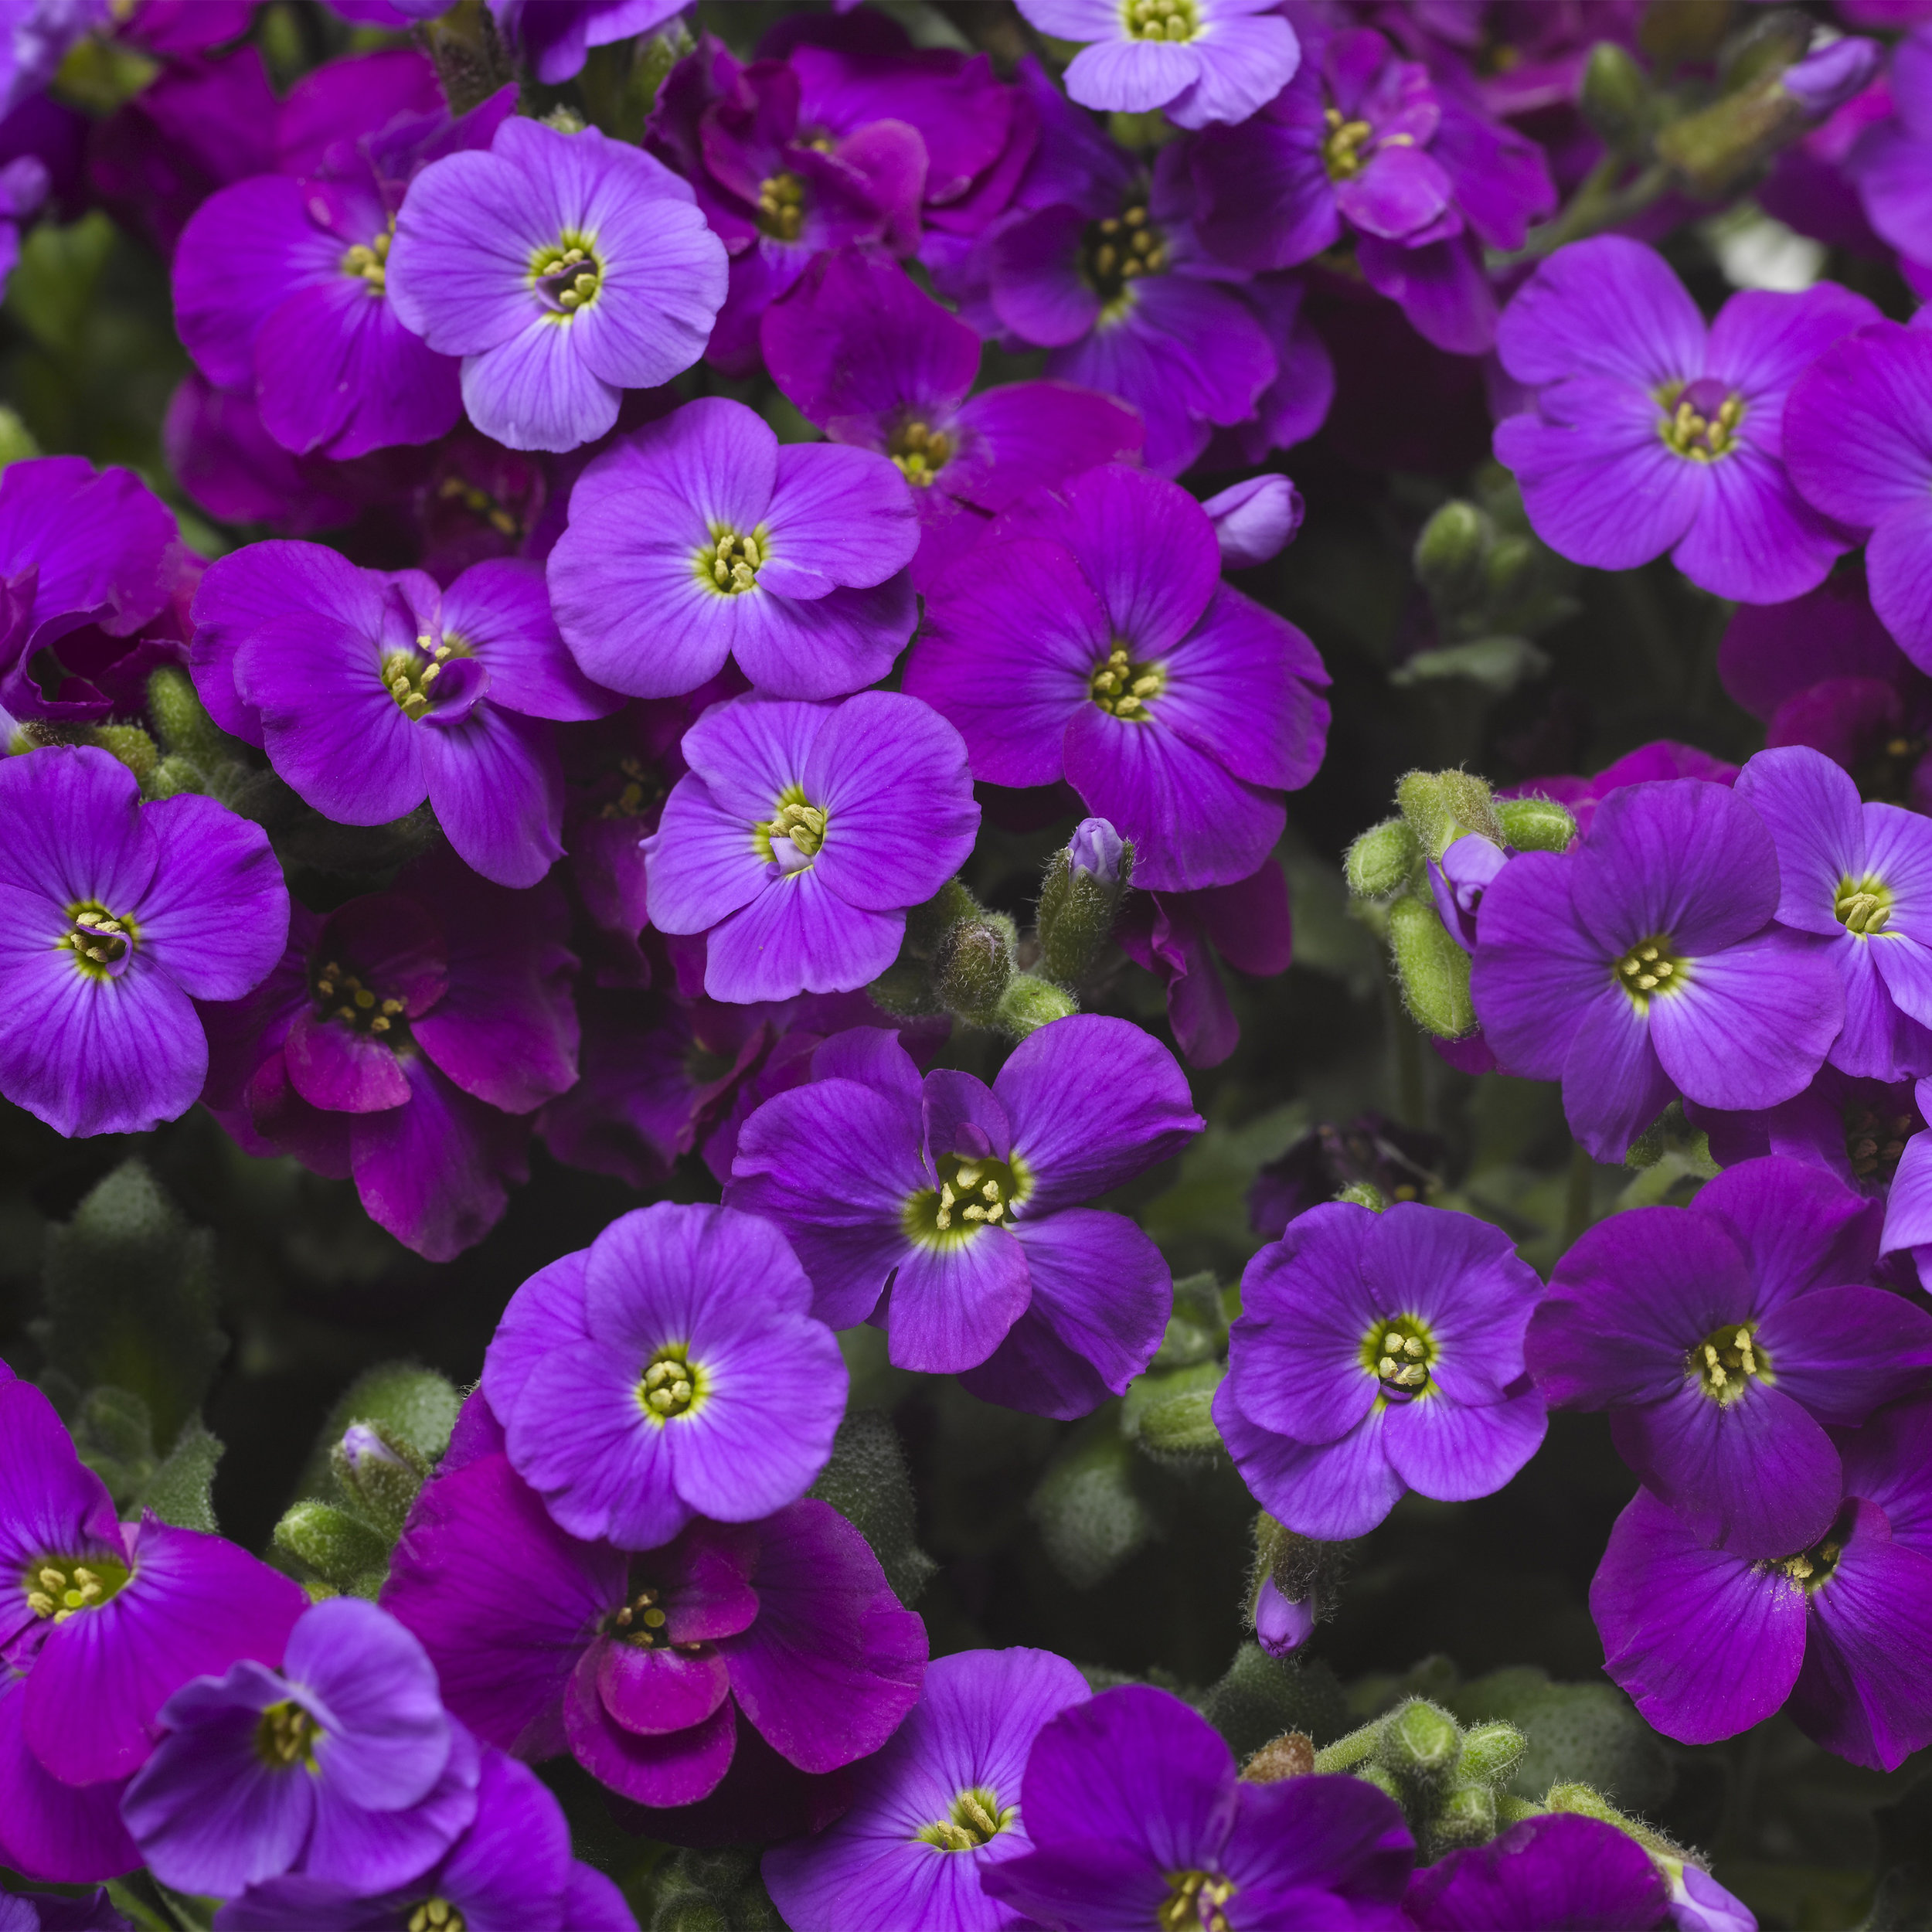 HR_Vegetative_Aubrieta_Axcent™_Axcent™_Deep_Purple_Imp._70045536_1.jpg